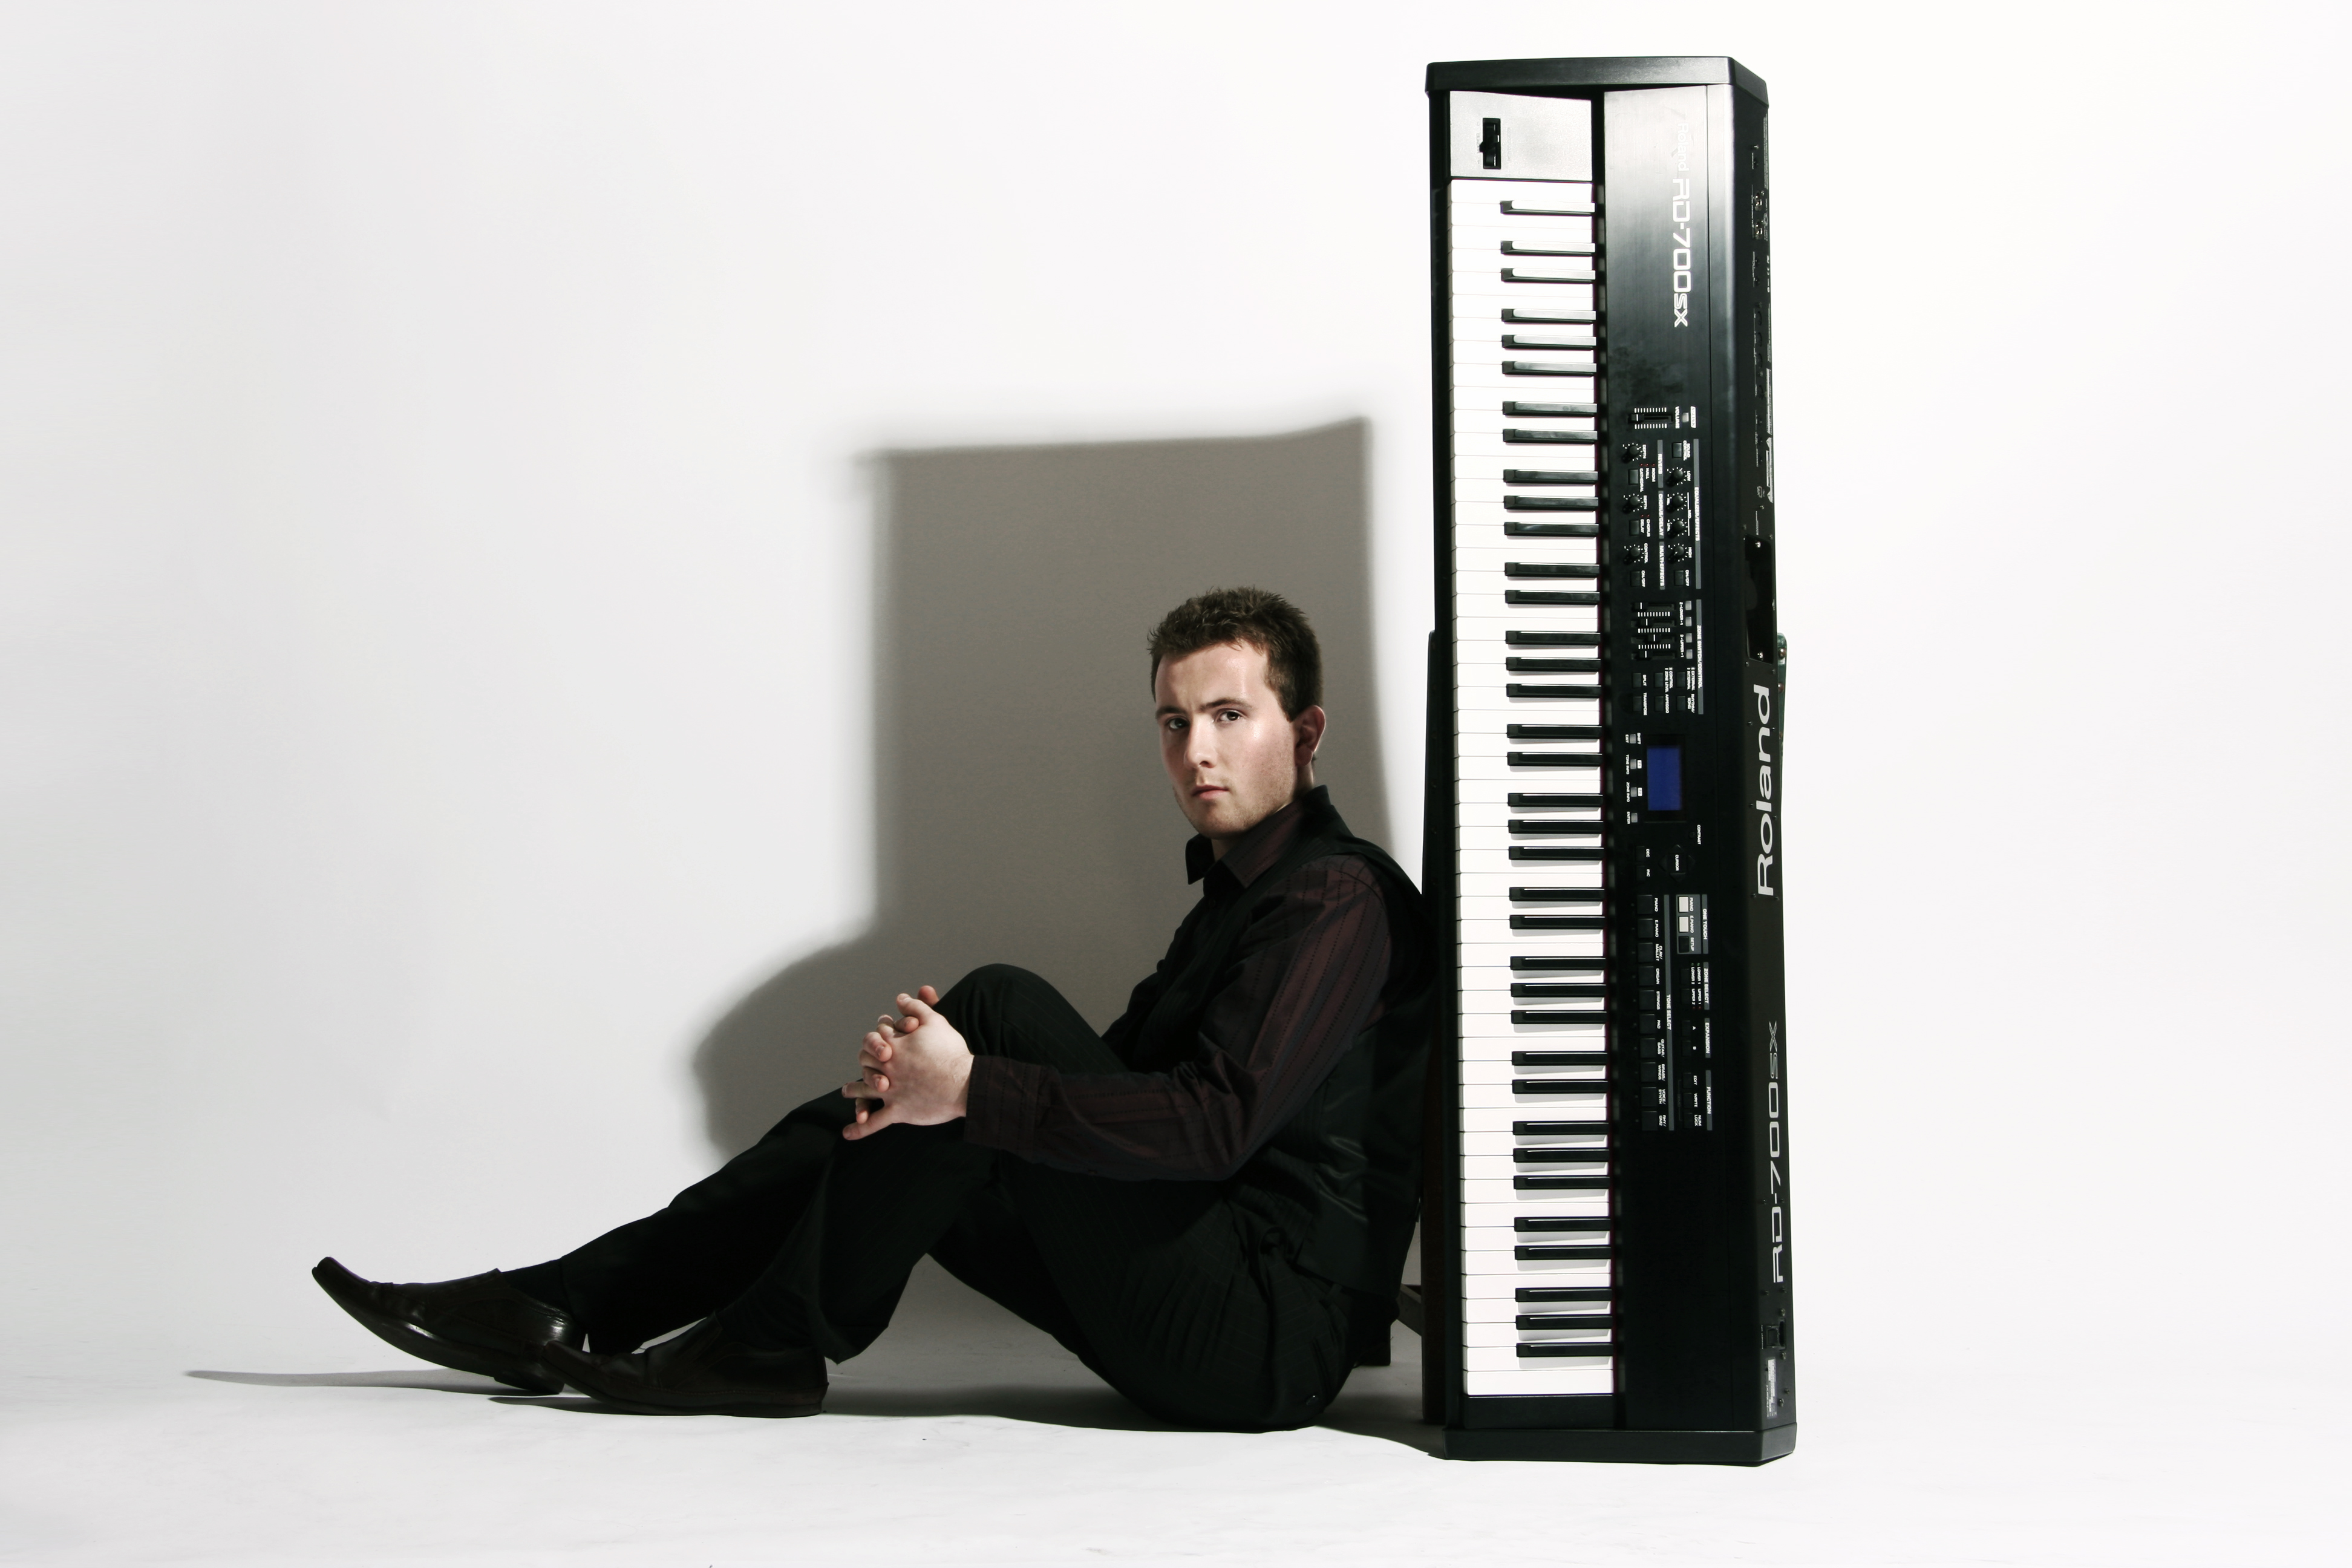 Joe Kenny Pianist with the keyboard used to play piano at weddings